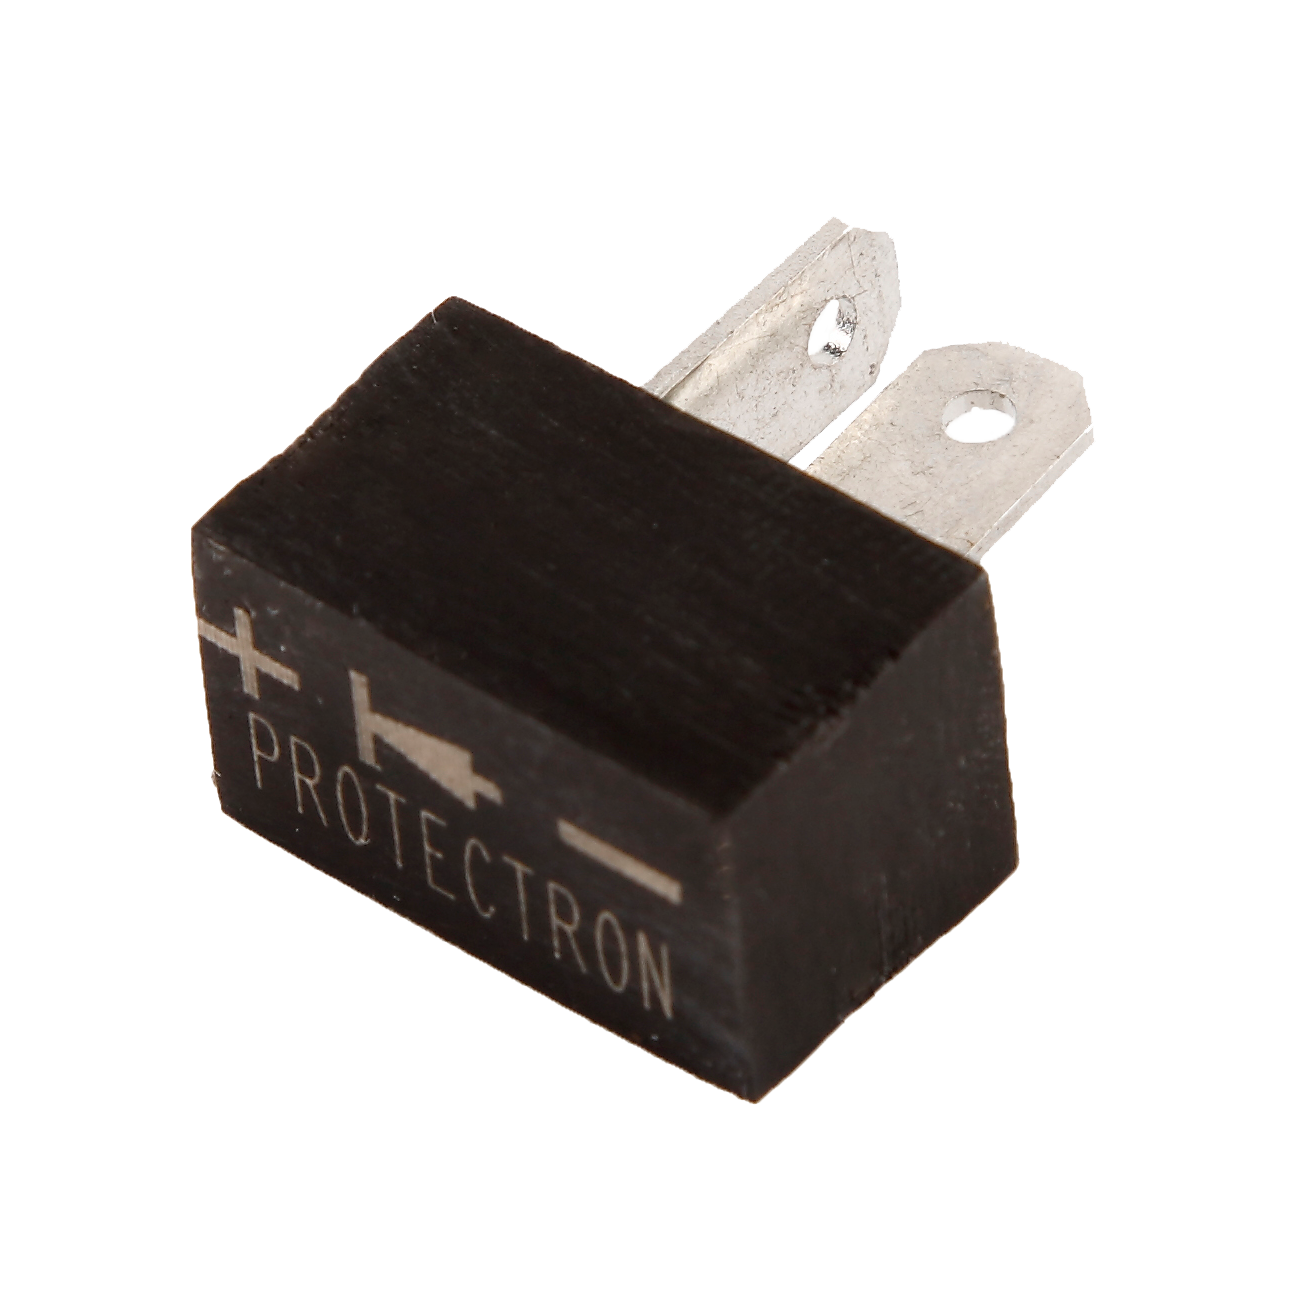 Protectron Ac Unit Fuse Box Inline Holder Diode